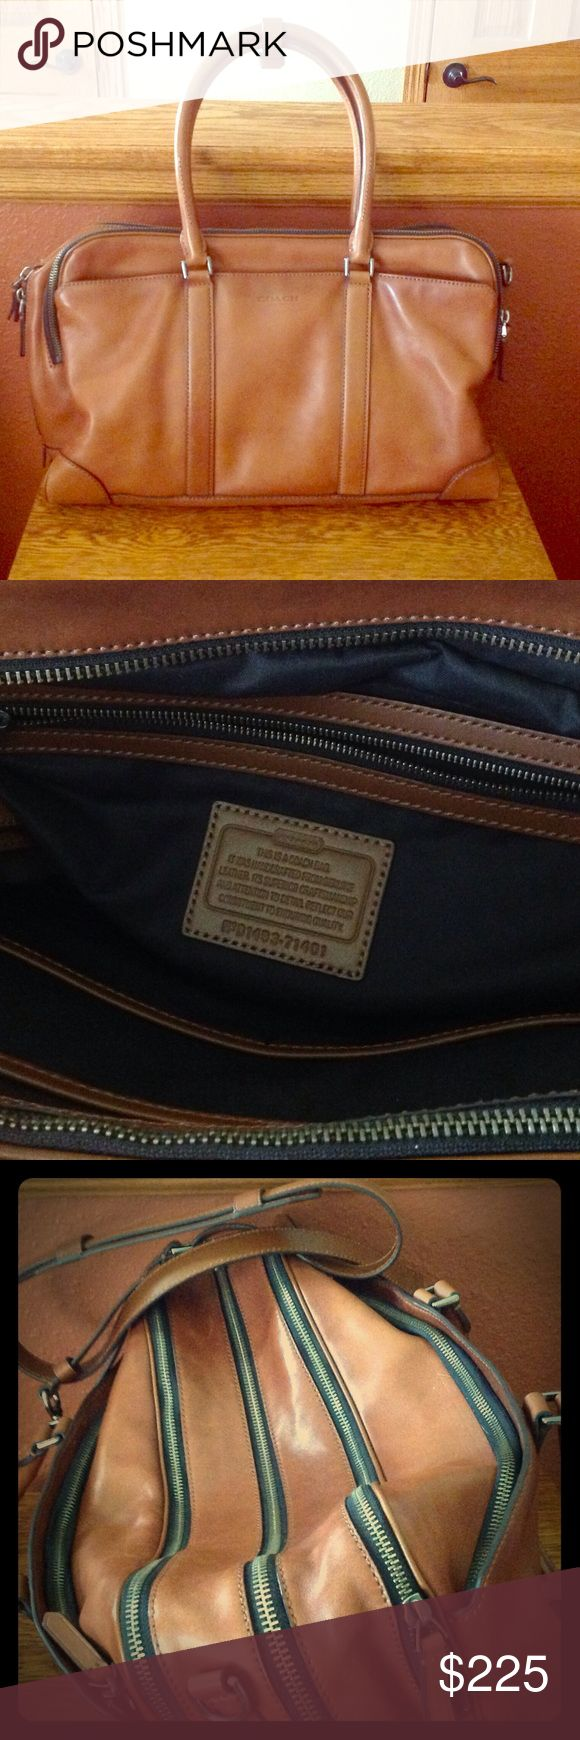 Coach travel bag Beautiful leather travel bag. Like new condition. The dimensions are 18 1/2 long 11 1/2 tall. There are 3 zippered compartments on top one on each side and one interior zipper.  Also has long shoulder strap. Can be used for business or travel. Coach Bags Travel Bags